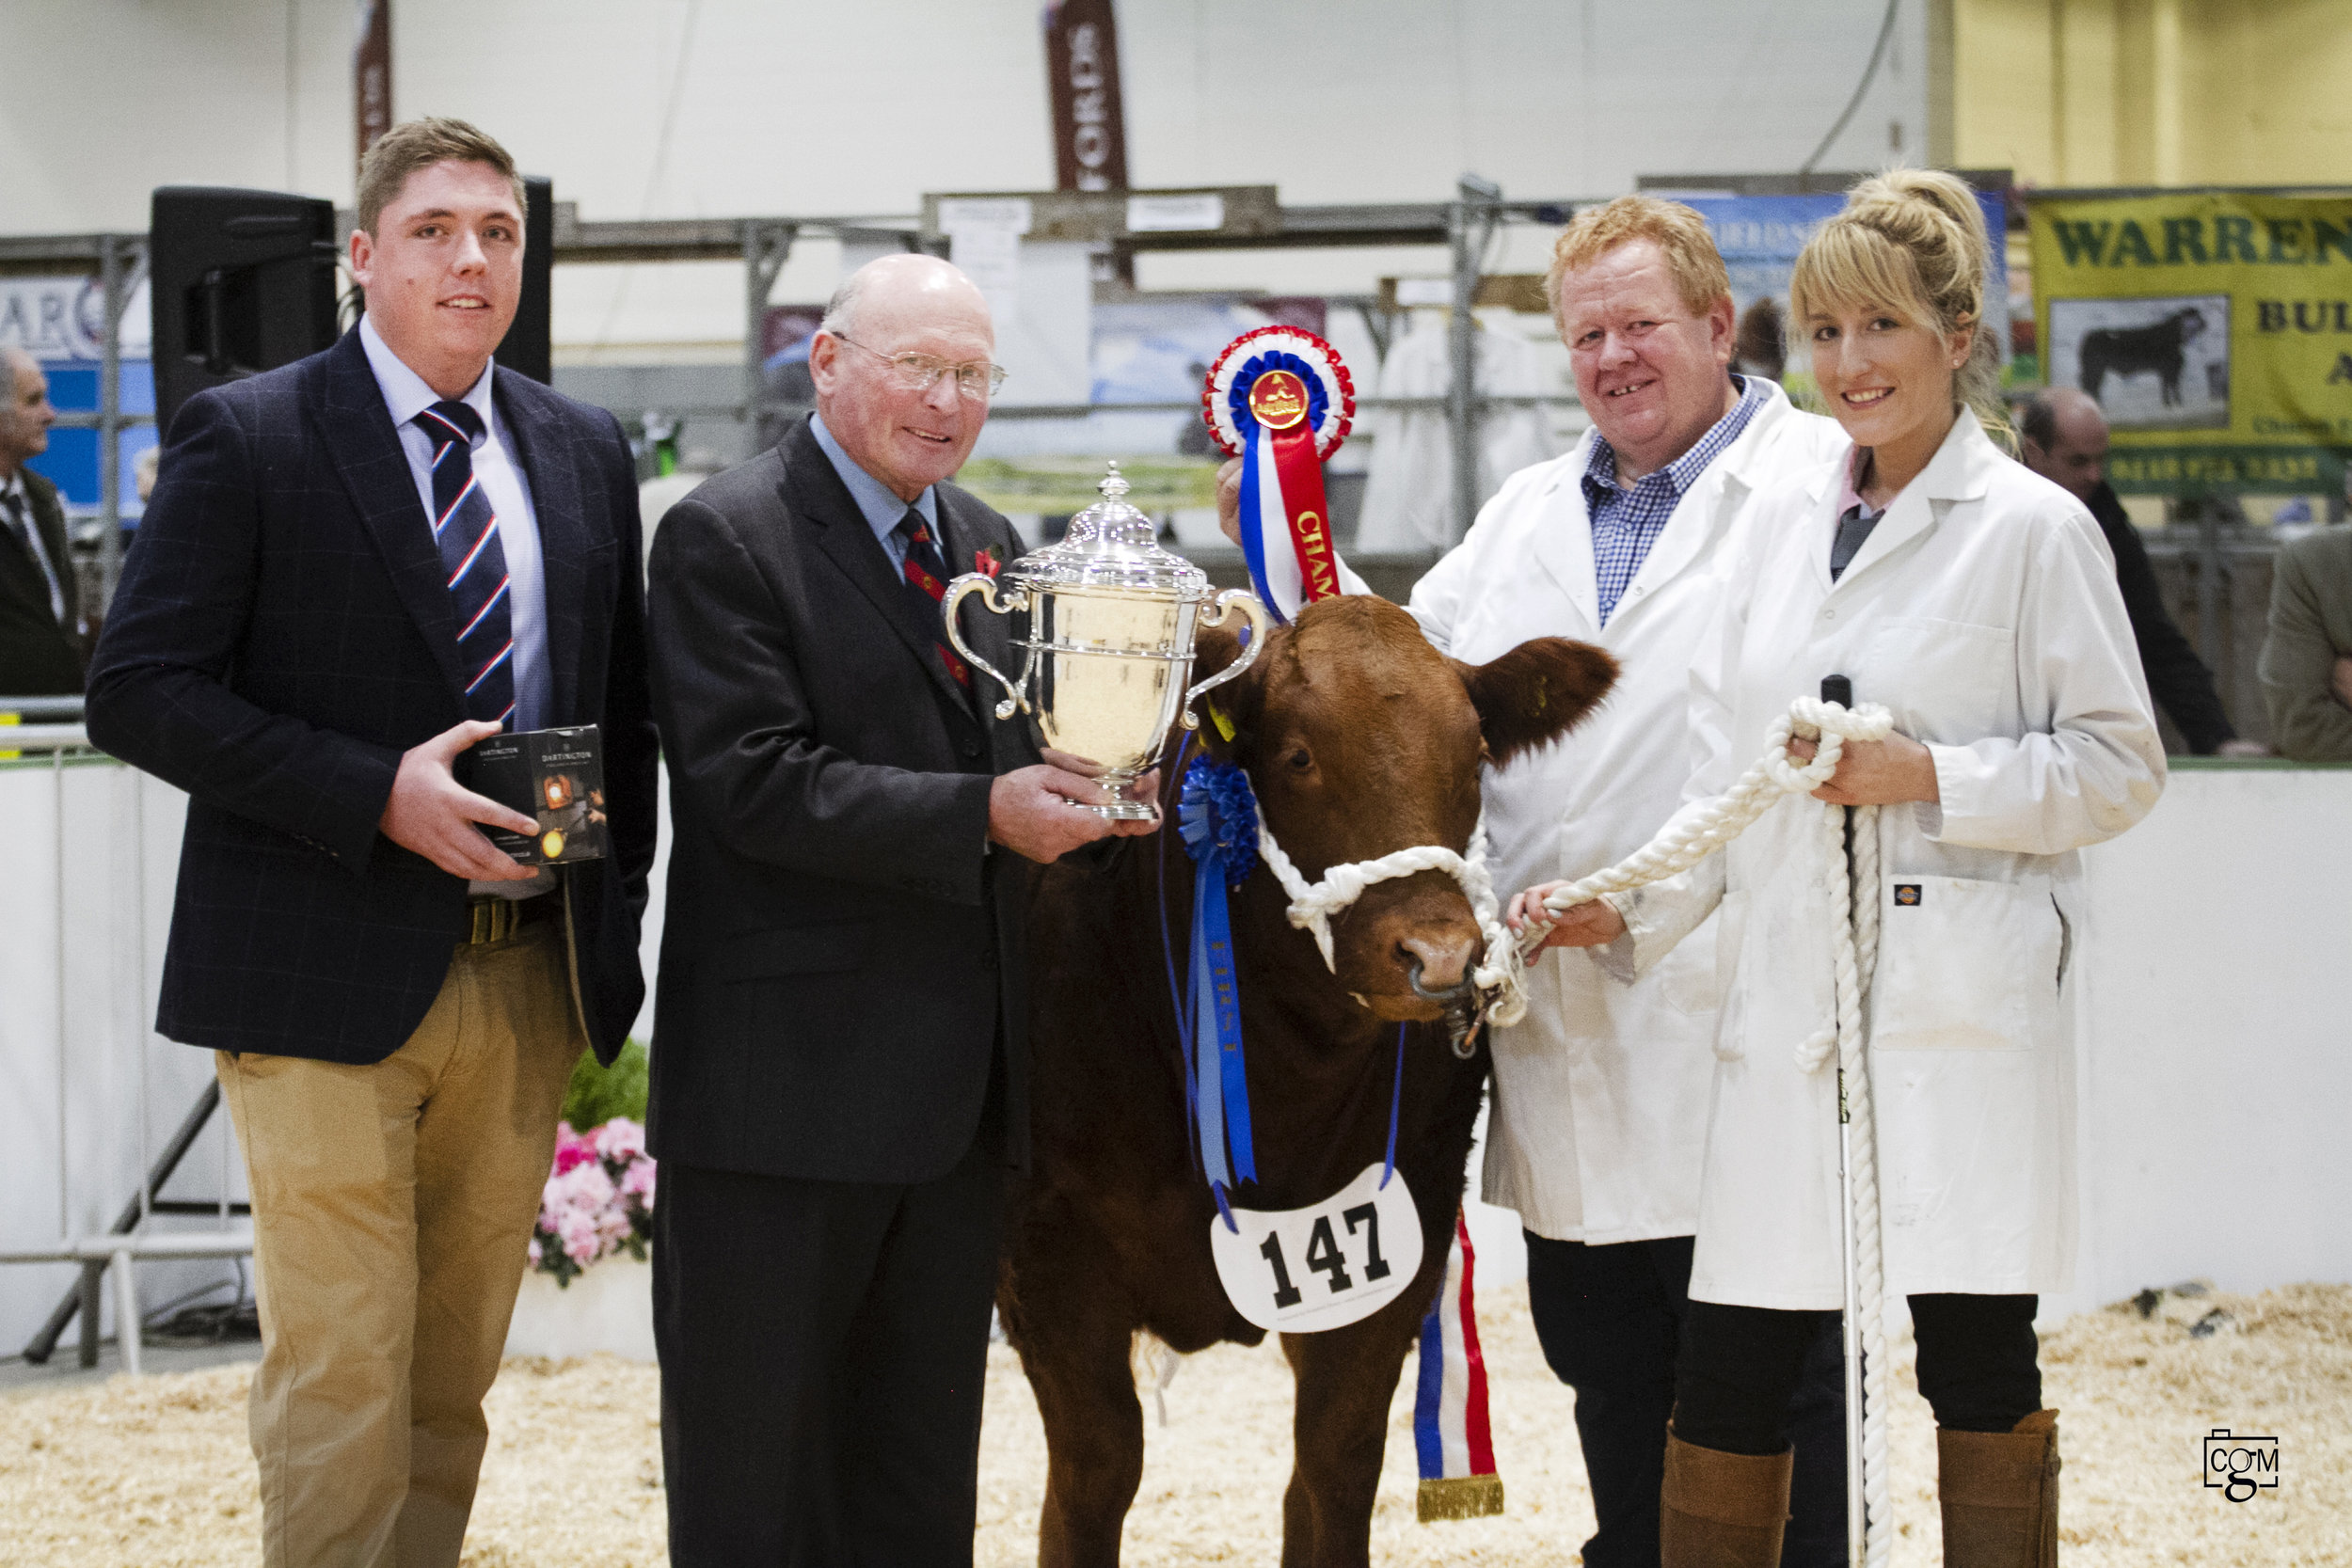 Robert Sloman, Hon Treasurer Royal Cornwall Agricultural Association, presents the Smithfield trophy to Cattle Champions Messrs Morgan & Jones